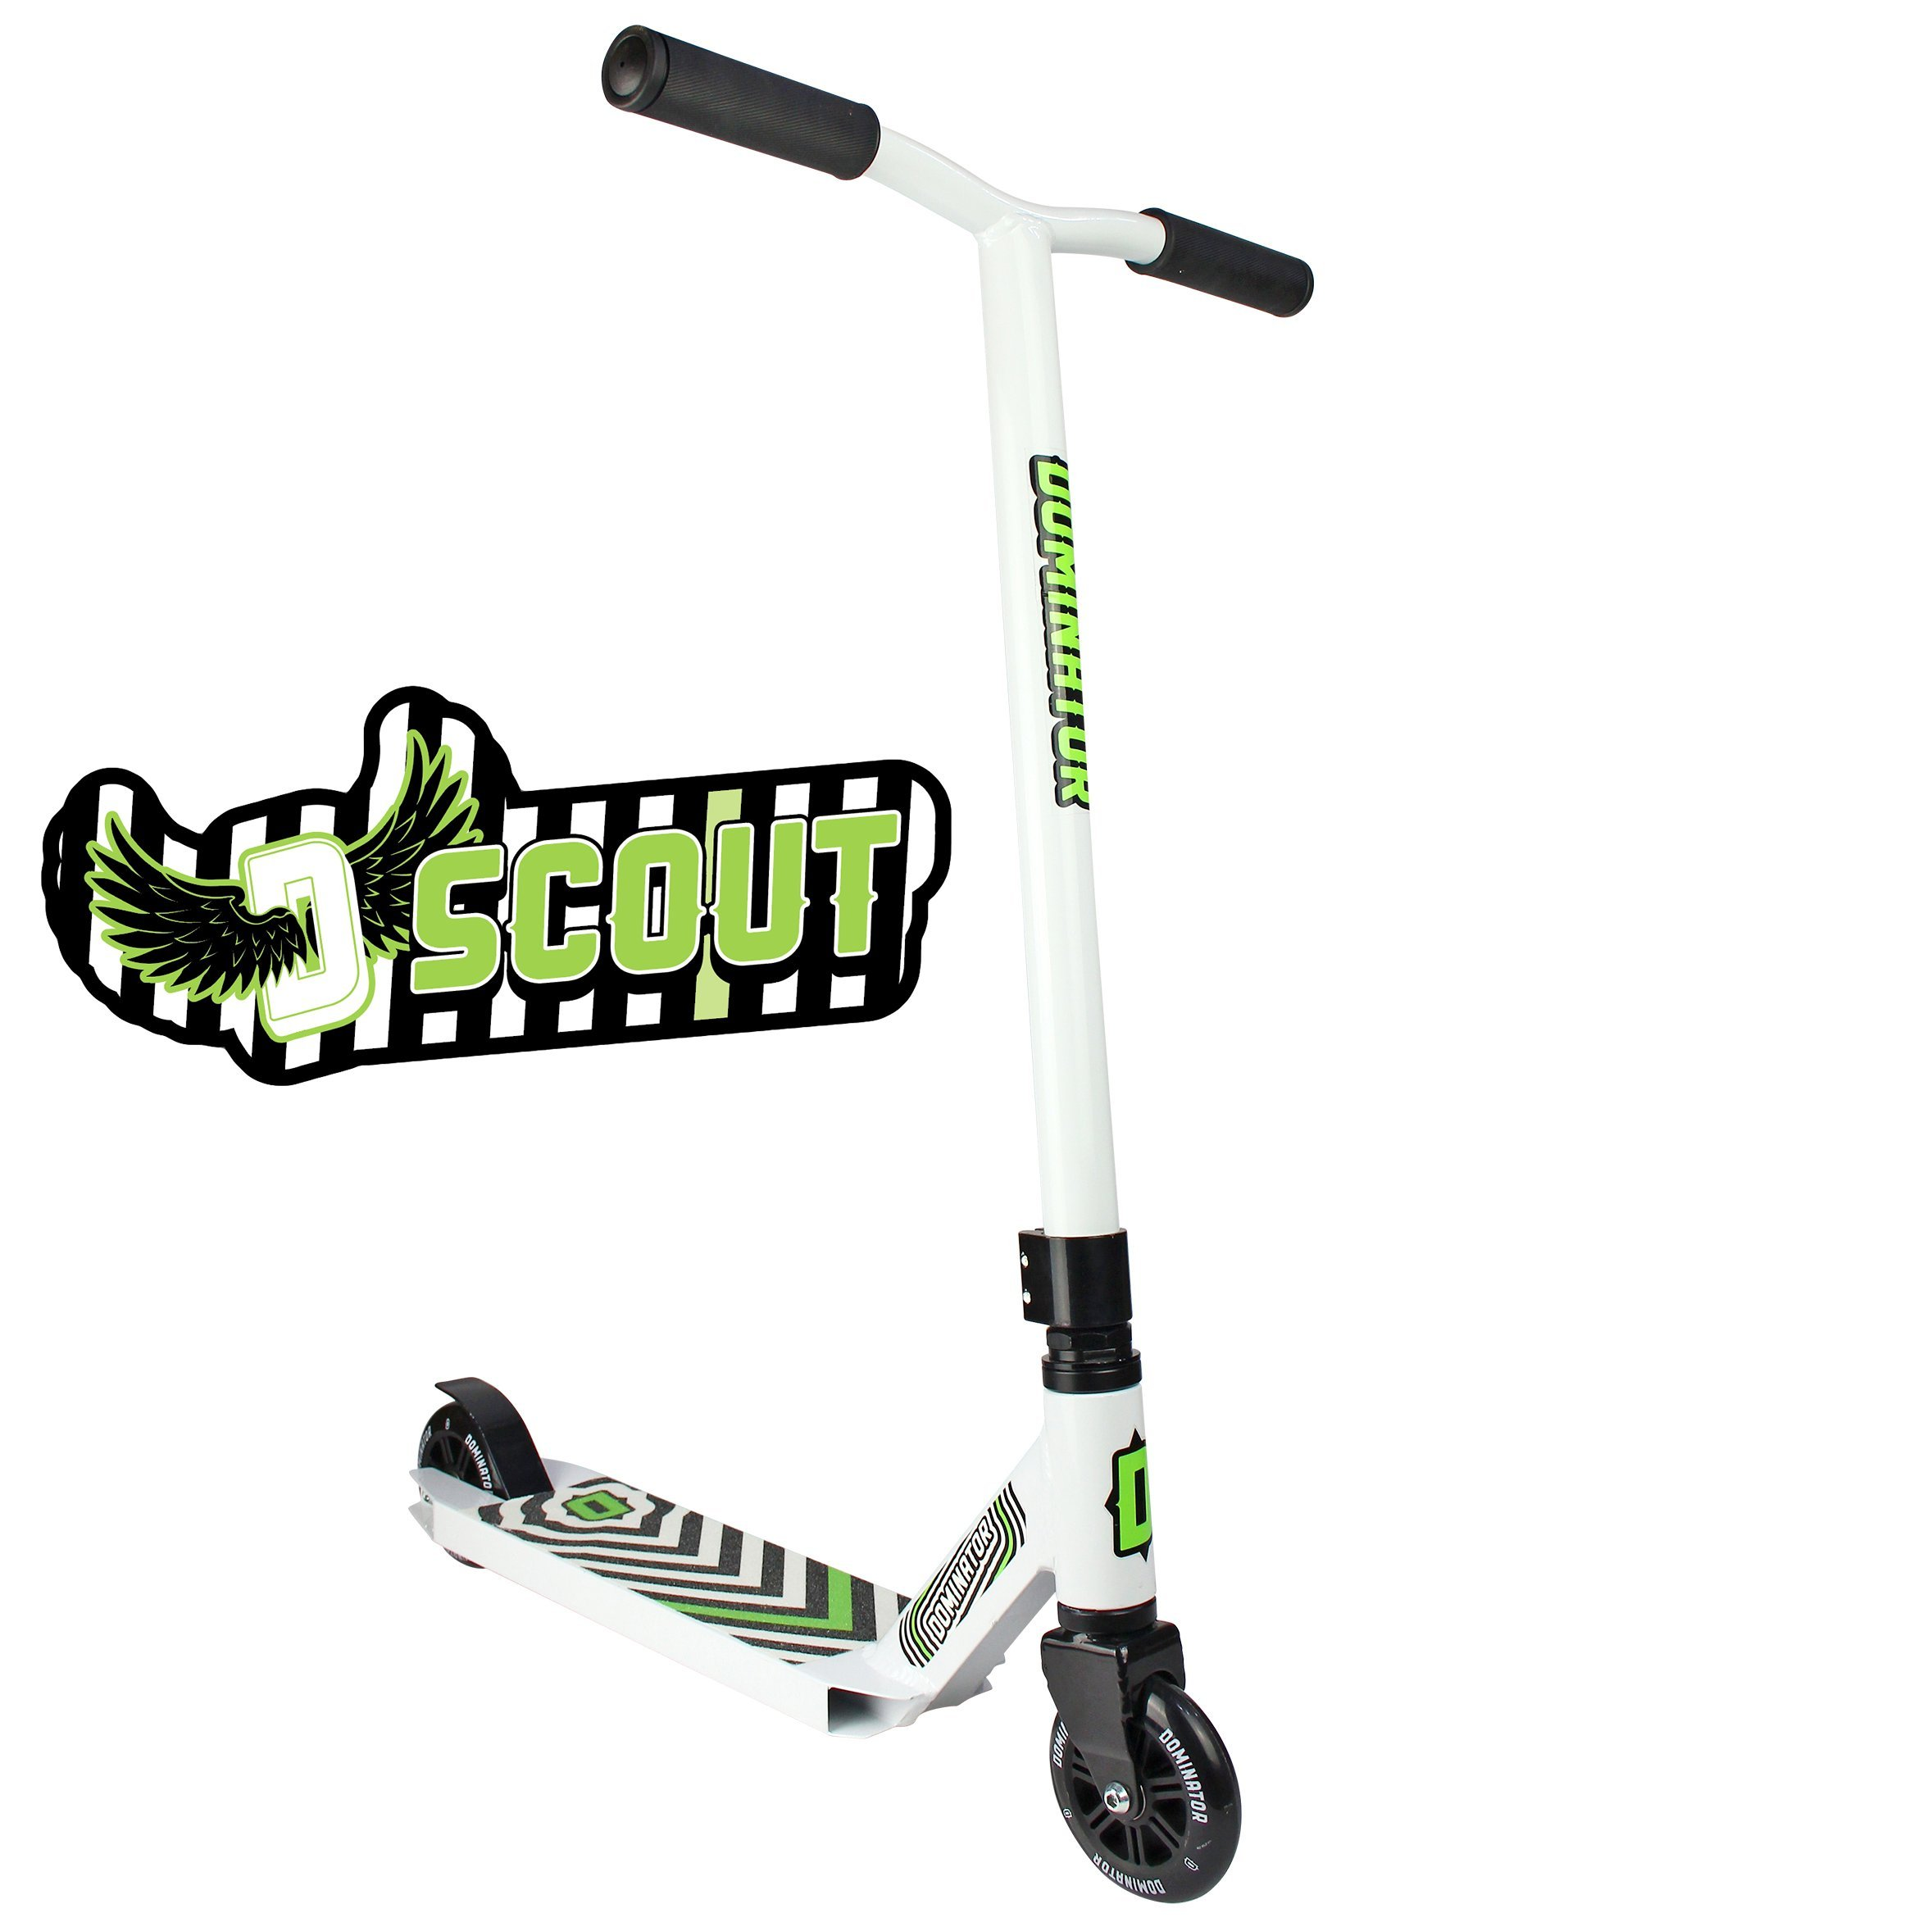 Dominator Scout Pro Scooter - Stunt Scooter - Trick Scooter (White/White)